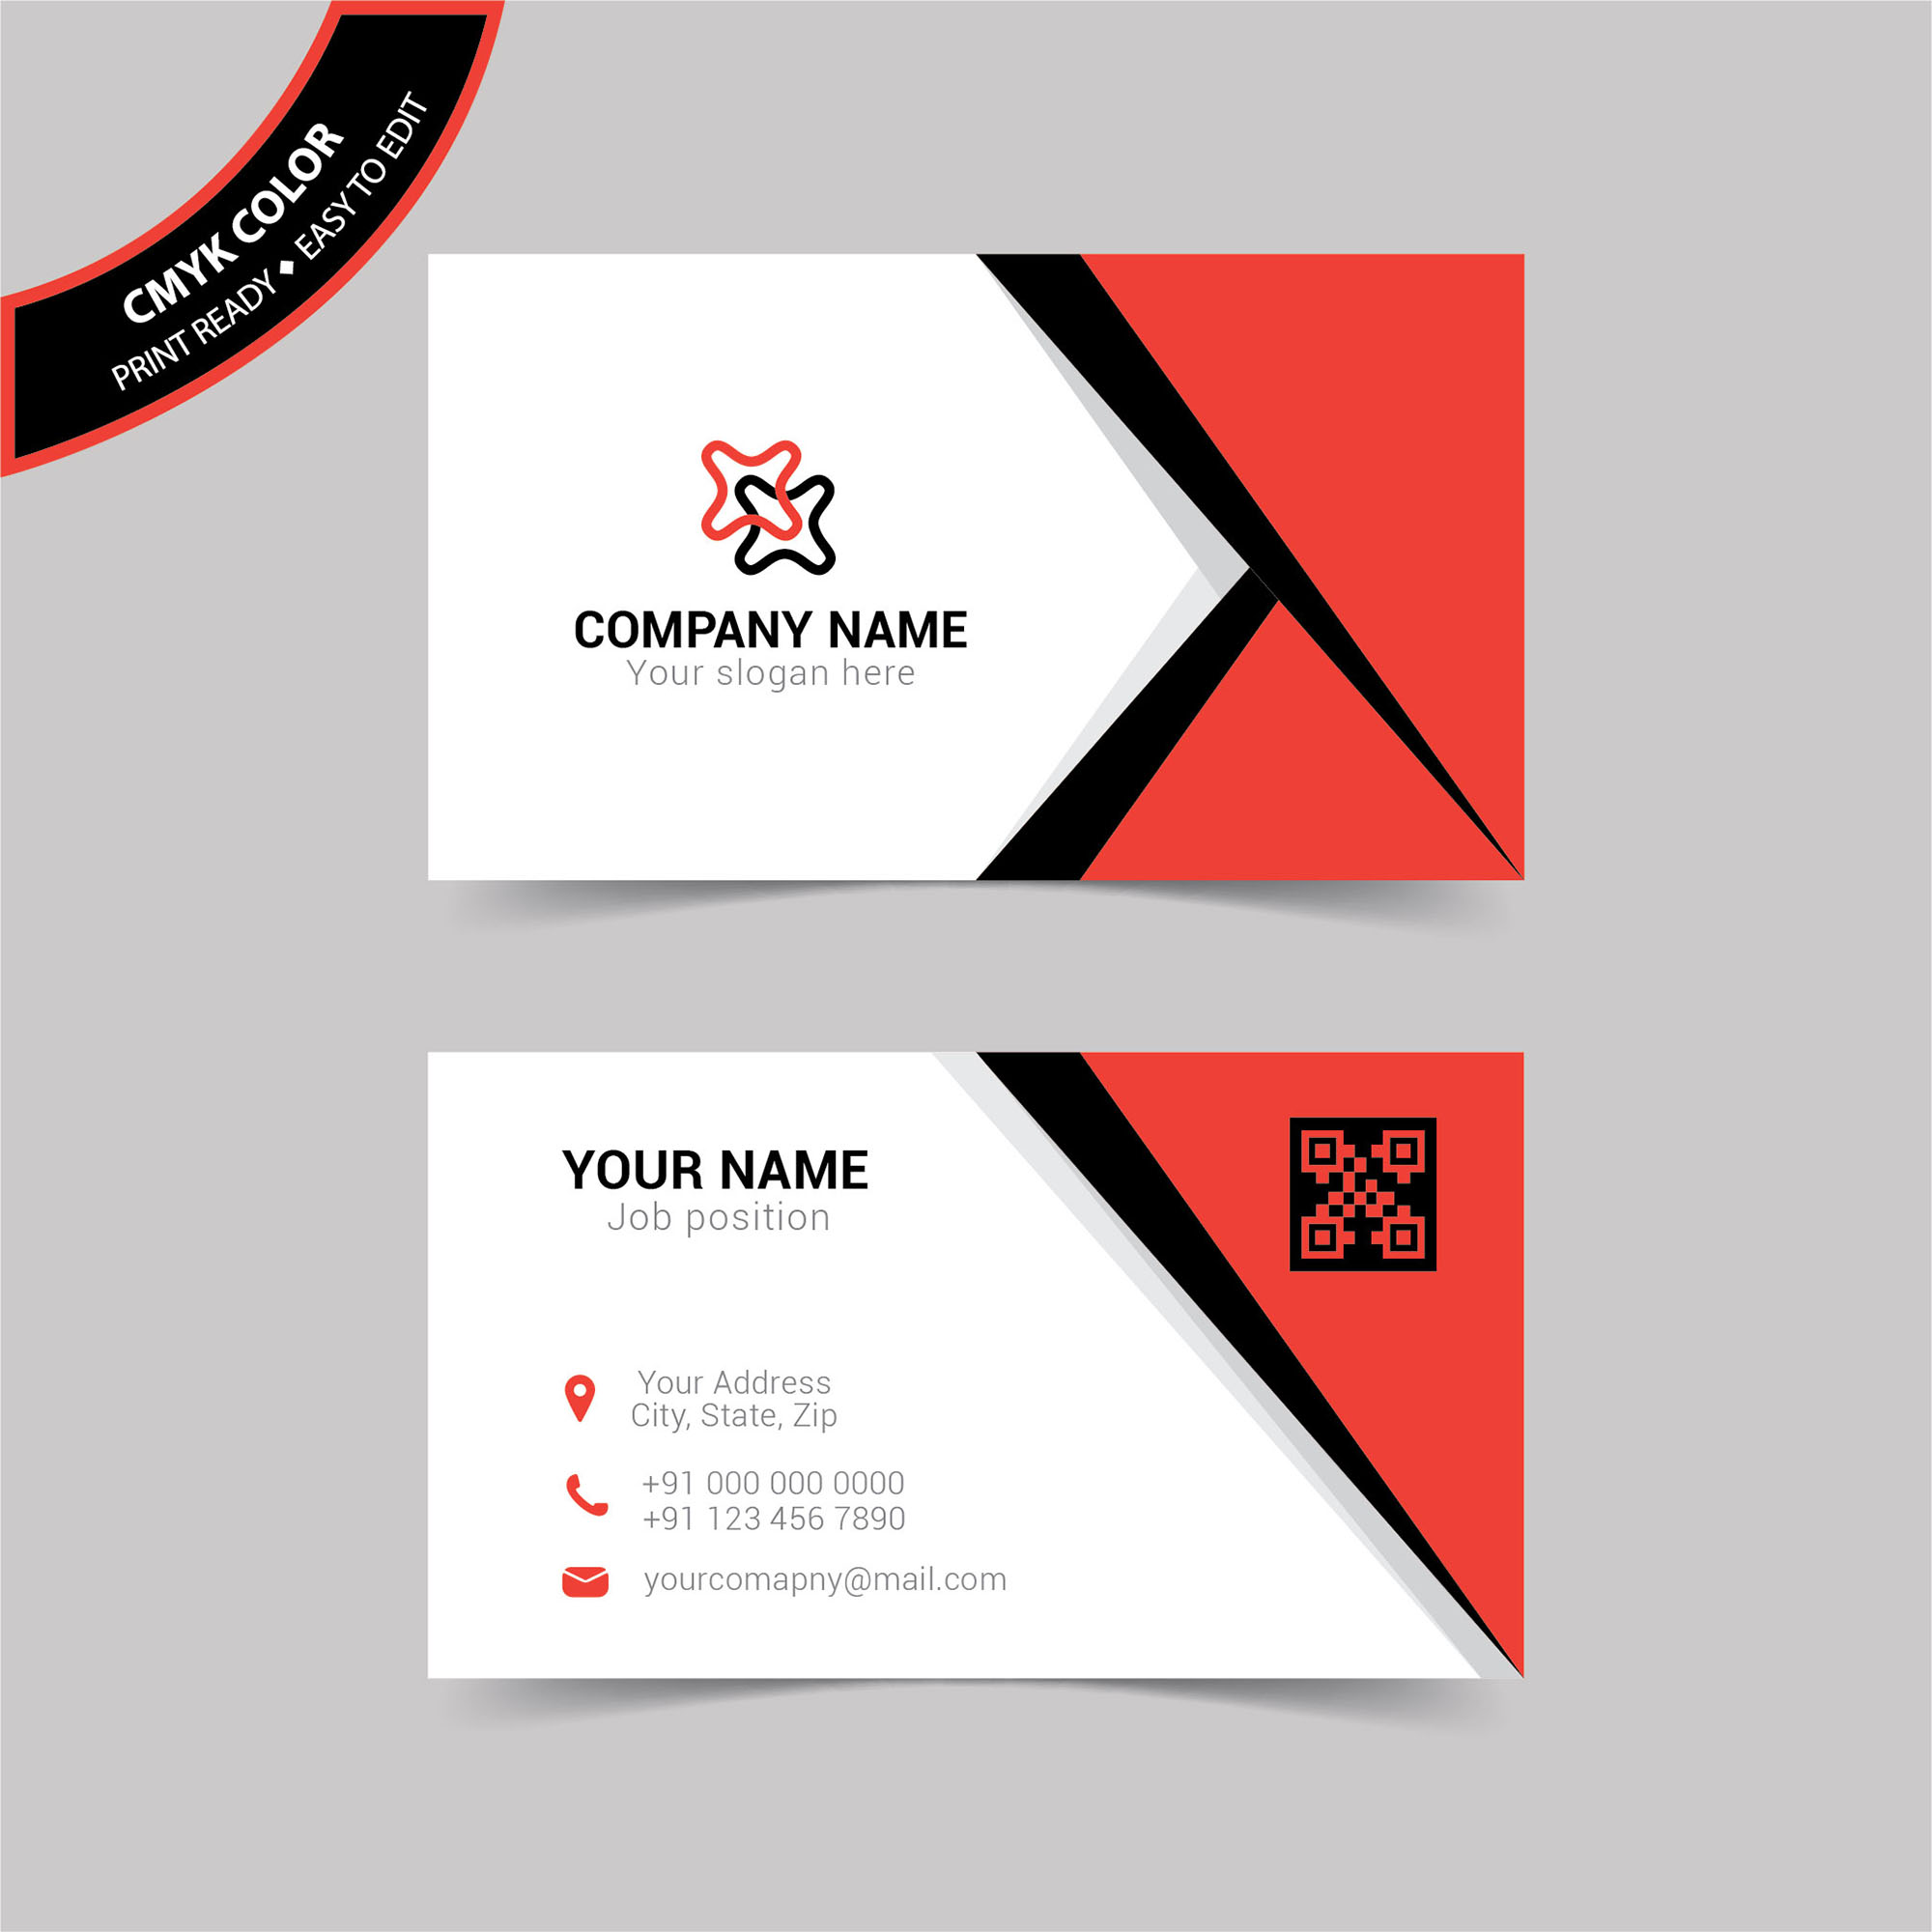 Simple corporate business card free download wisxi business card business cards business card design business card template design templates flashek Image collections